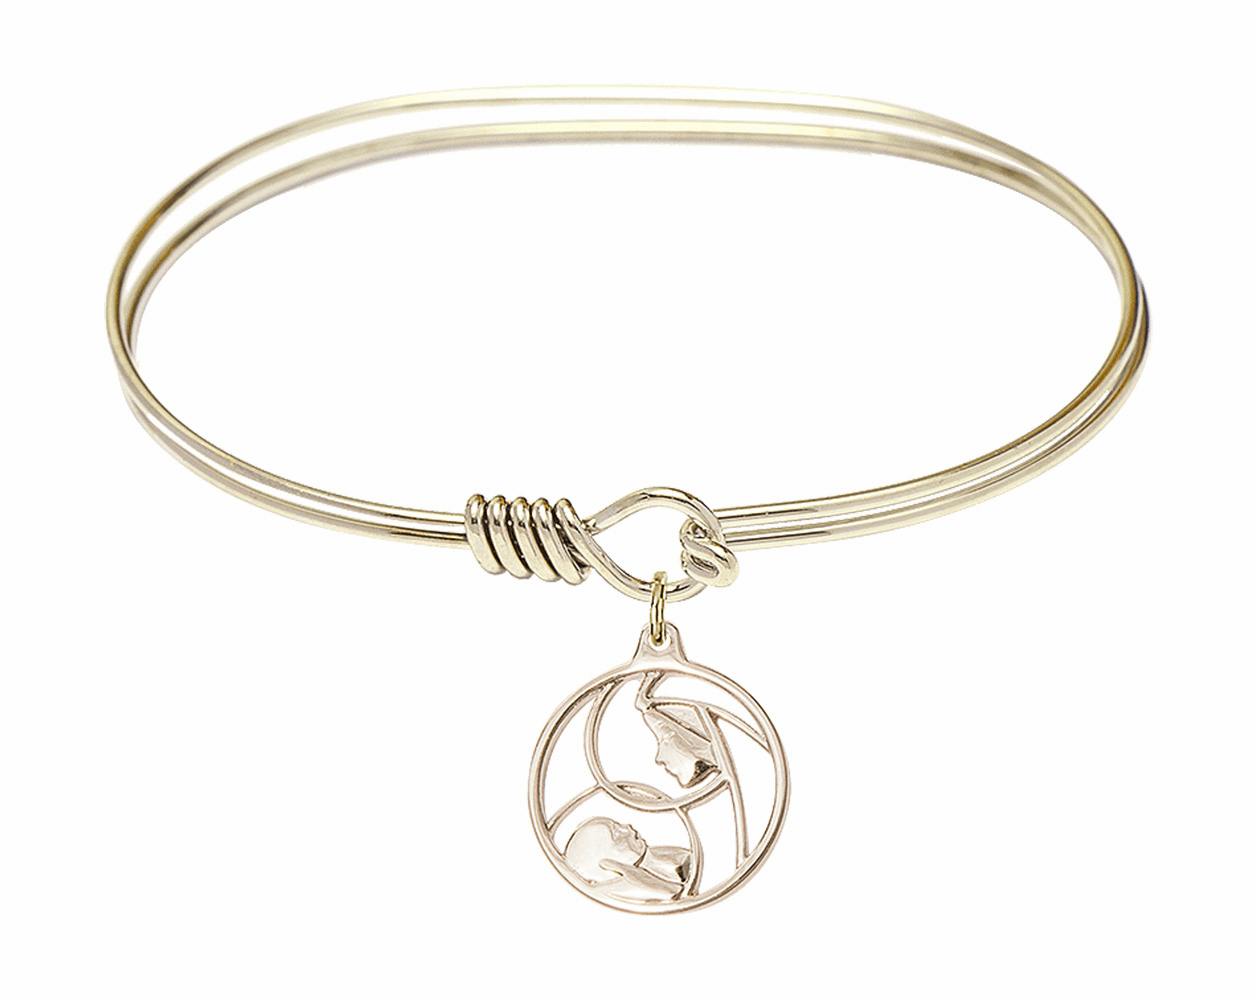 Round Eye Hook Bangle Bracelet w/Madonna and Child Charm by Bliss Mfg